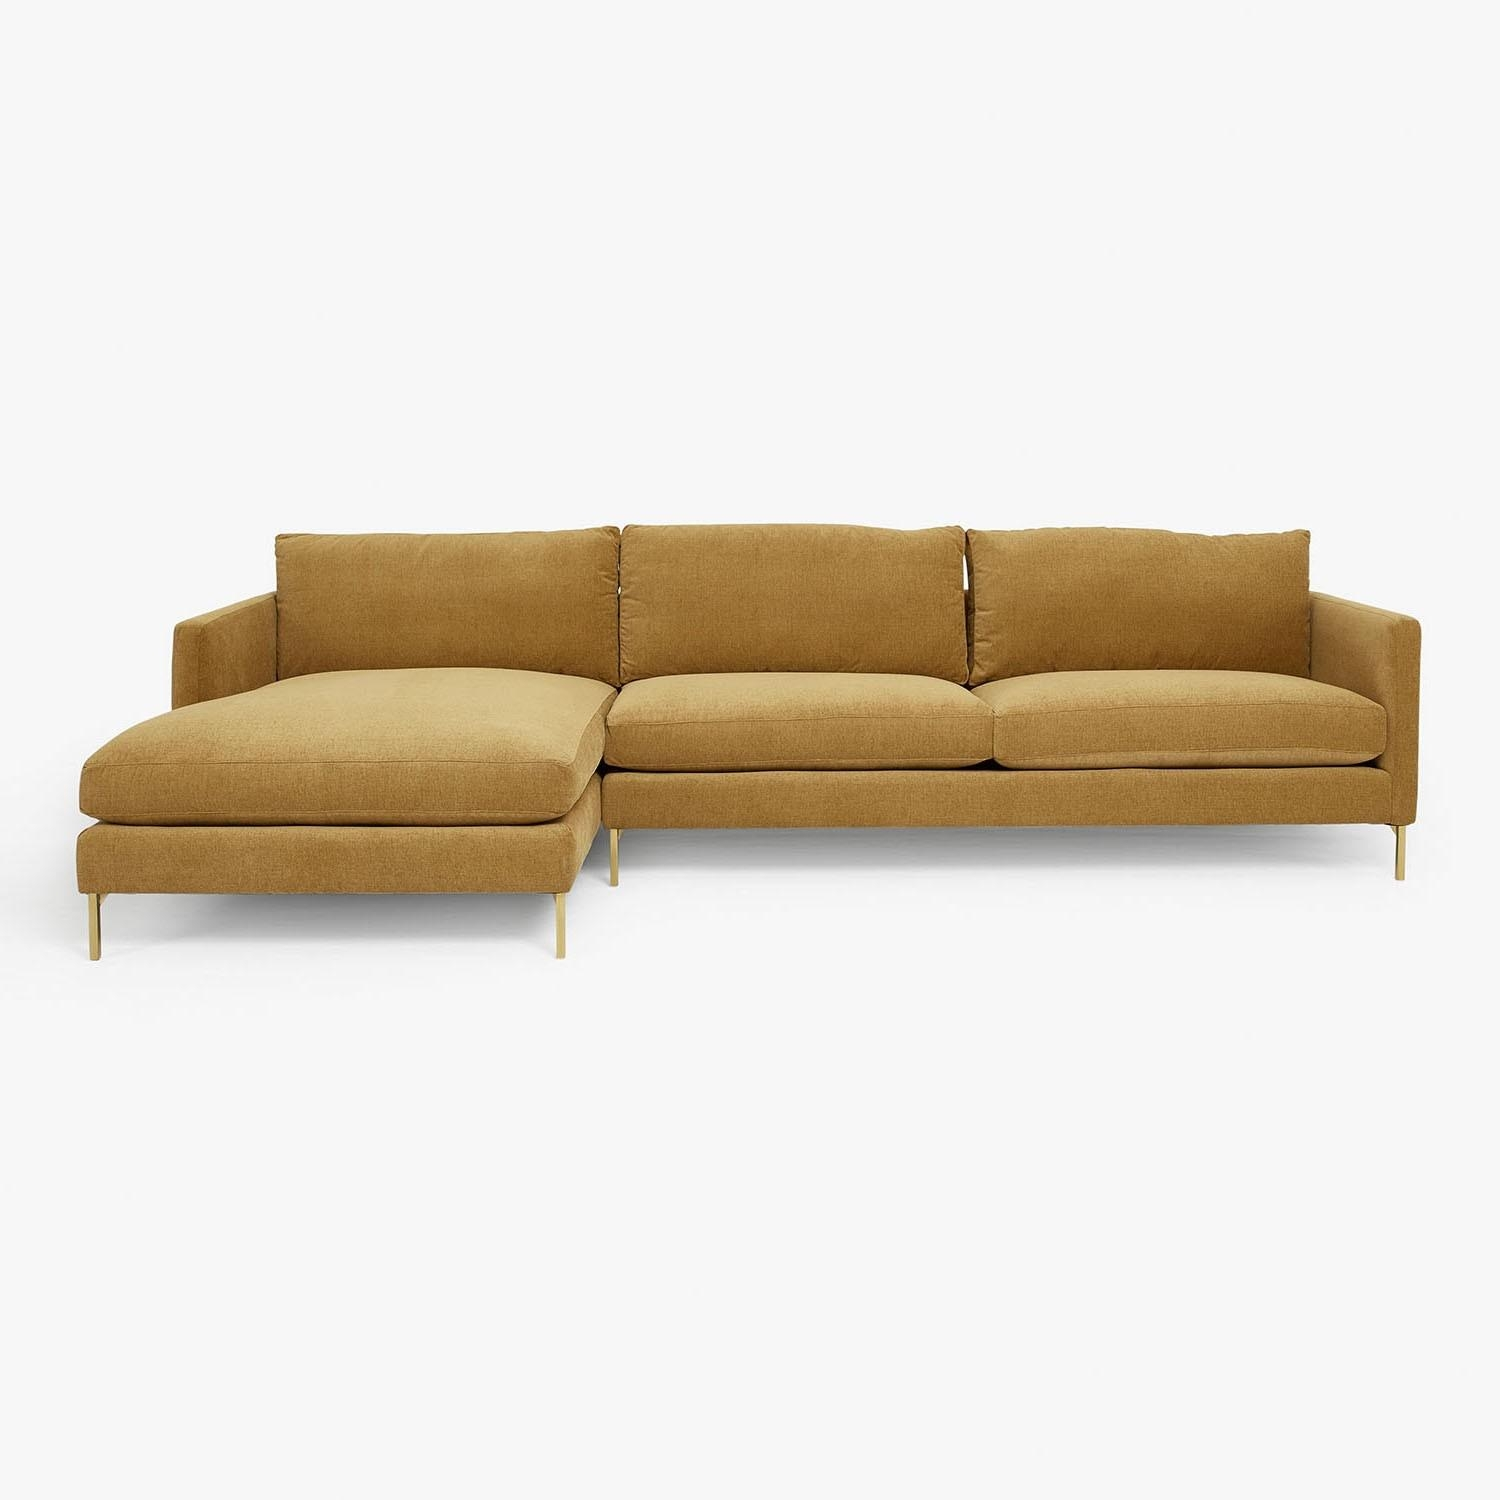 Cobble Hill Hannah Sectional A 1 Living Room Sofa Vintage Modern Intended For Cobble Hill Sofas (Image 10 of 20)